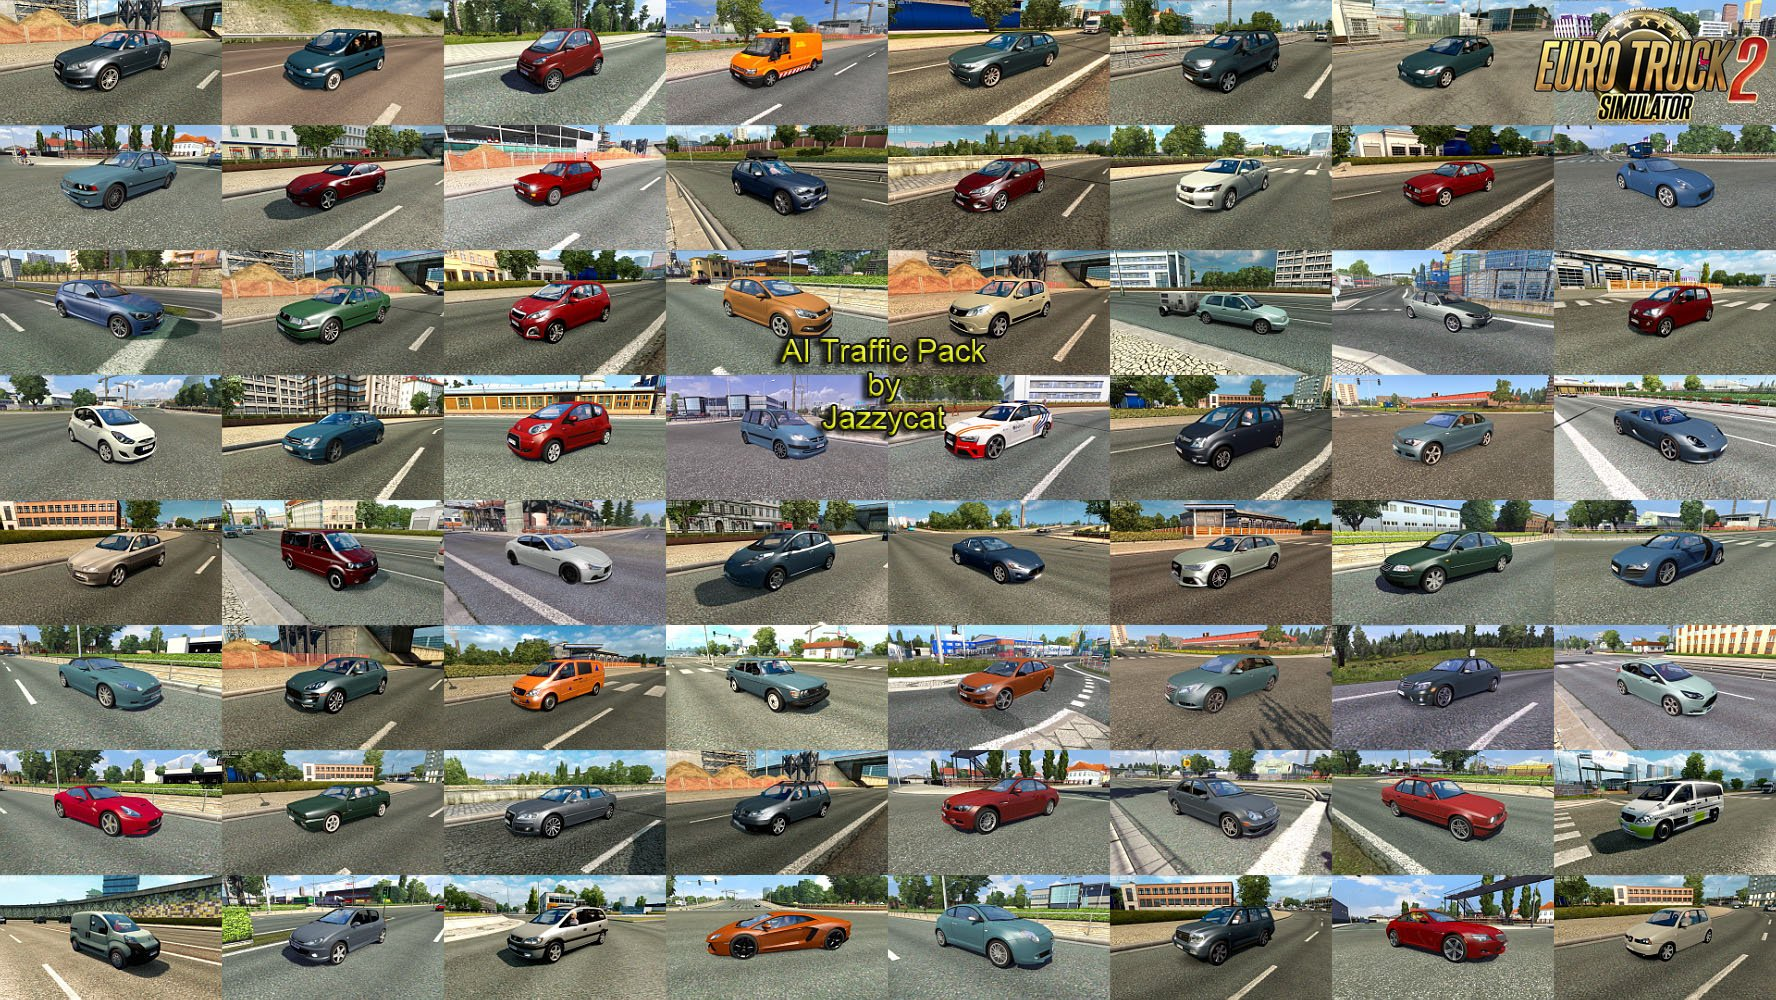 AI Traffic Pack v8.9 by Jazzycat